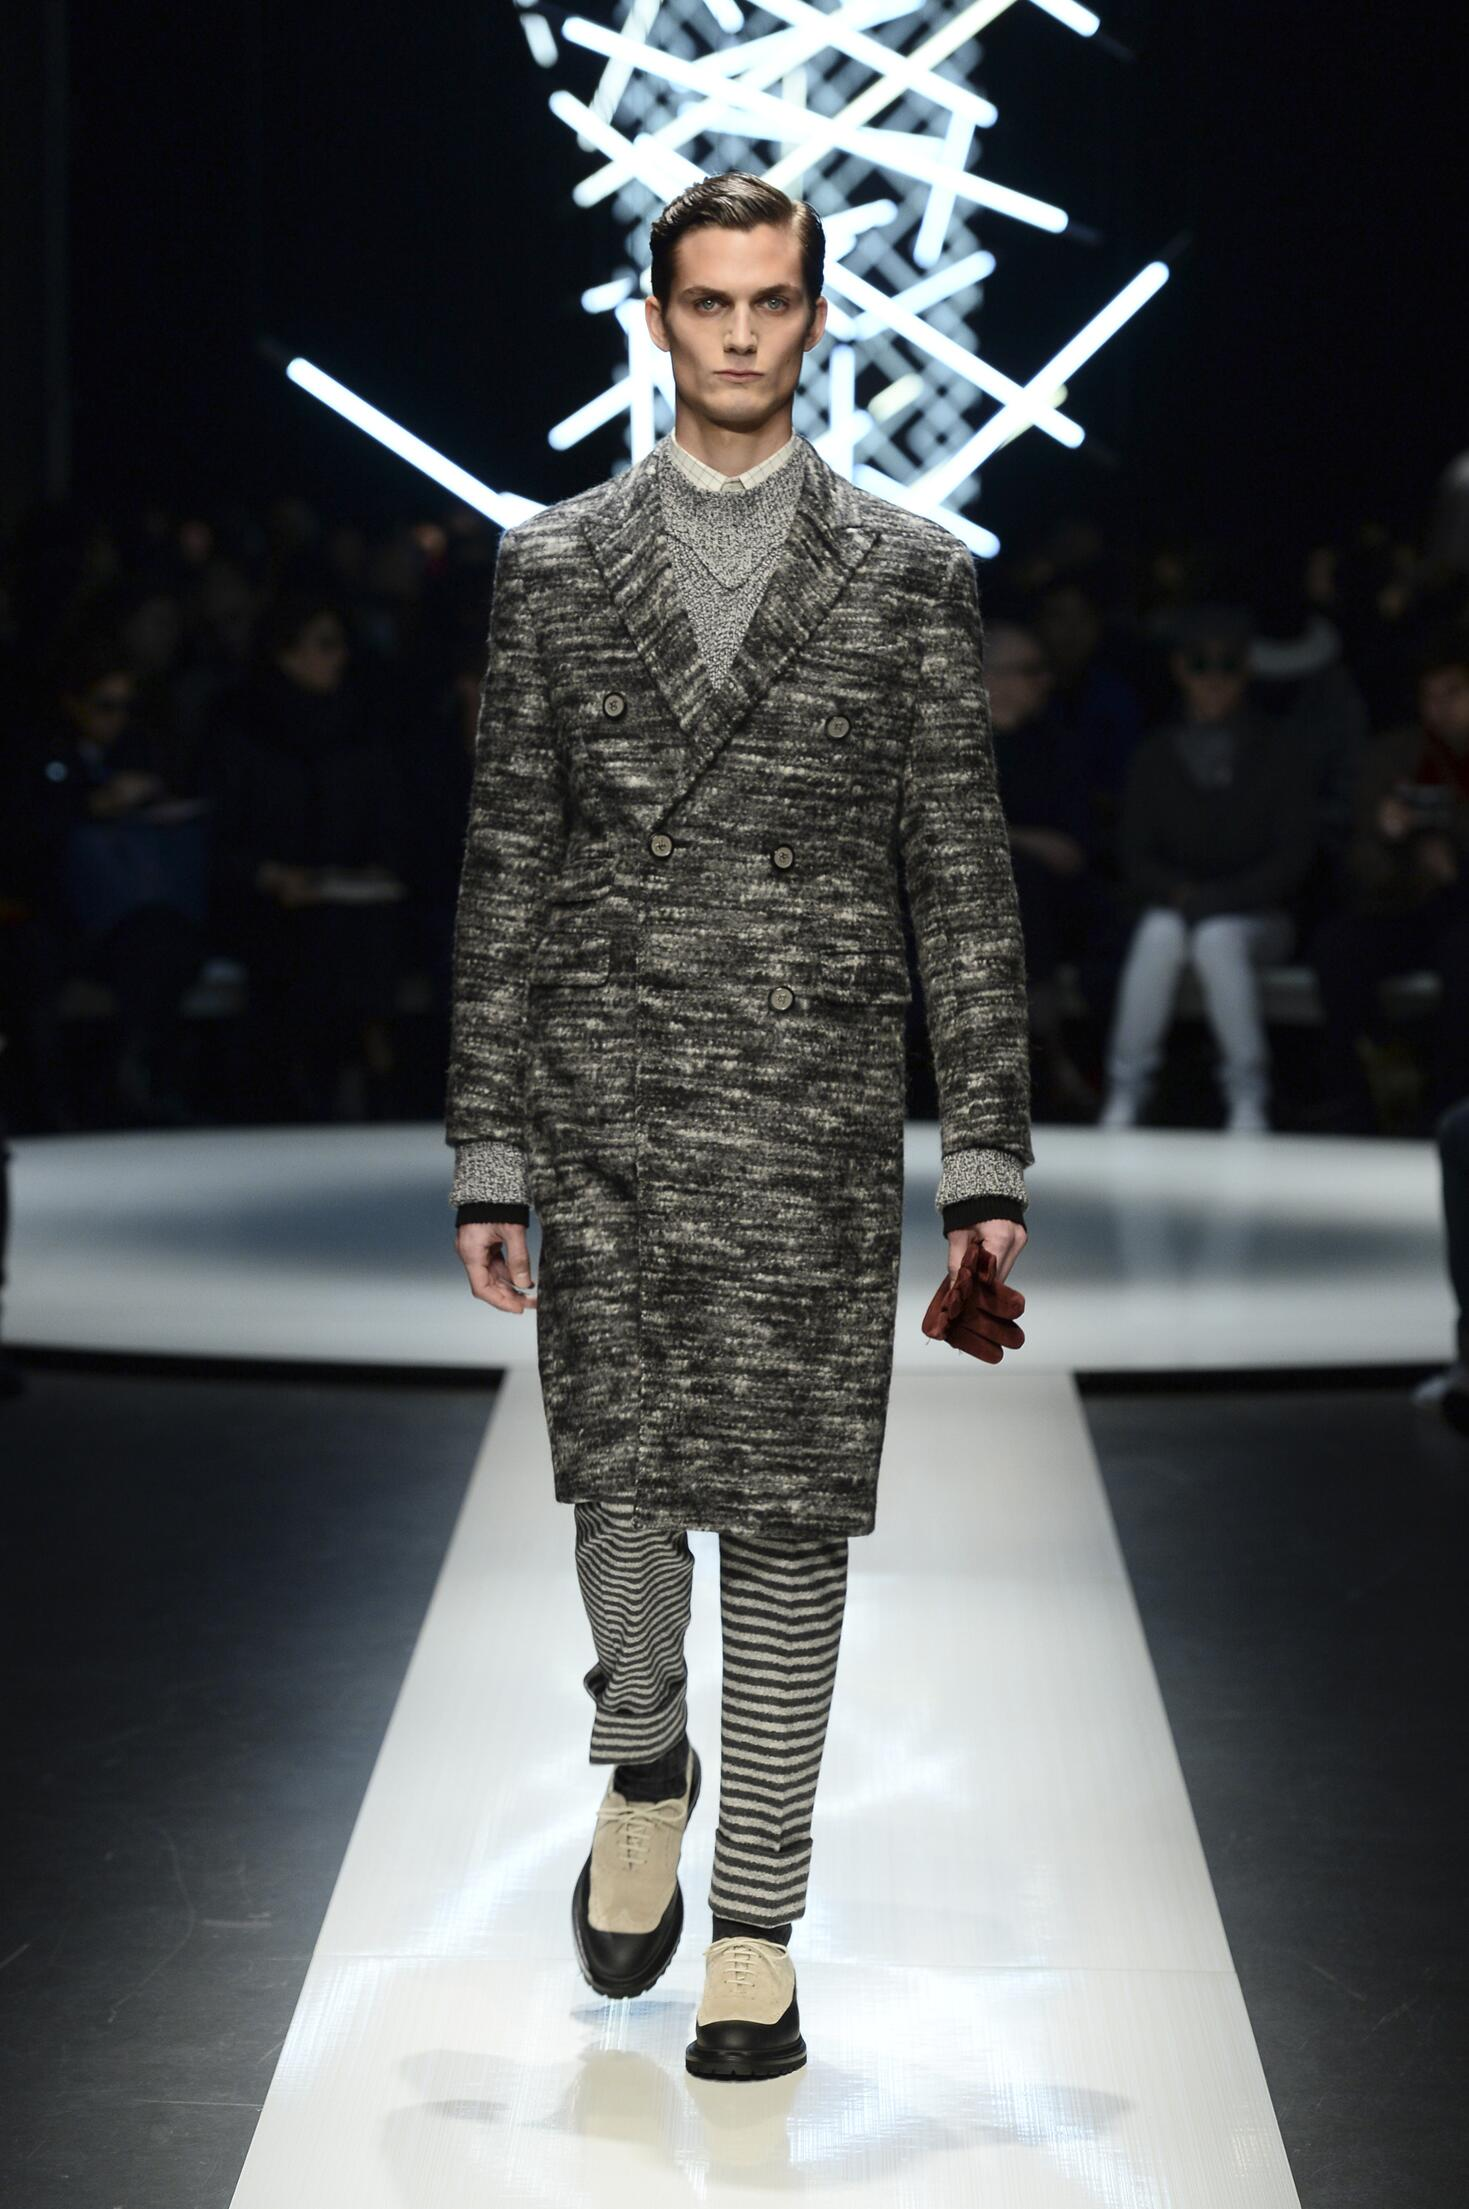 Fall Fashion Man Canali Collection